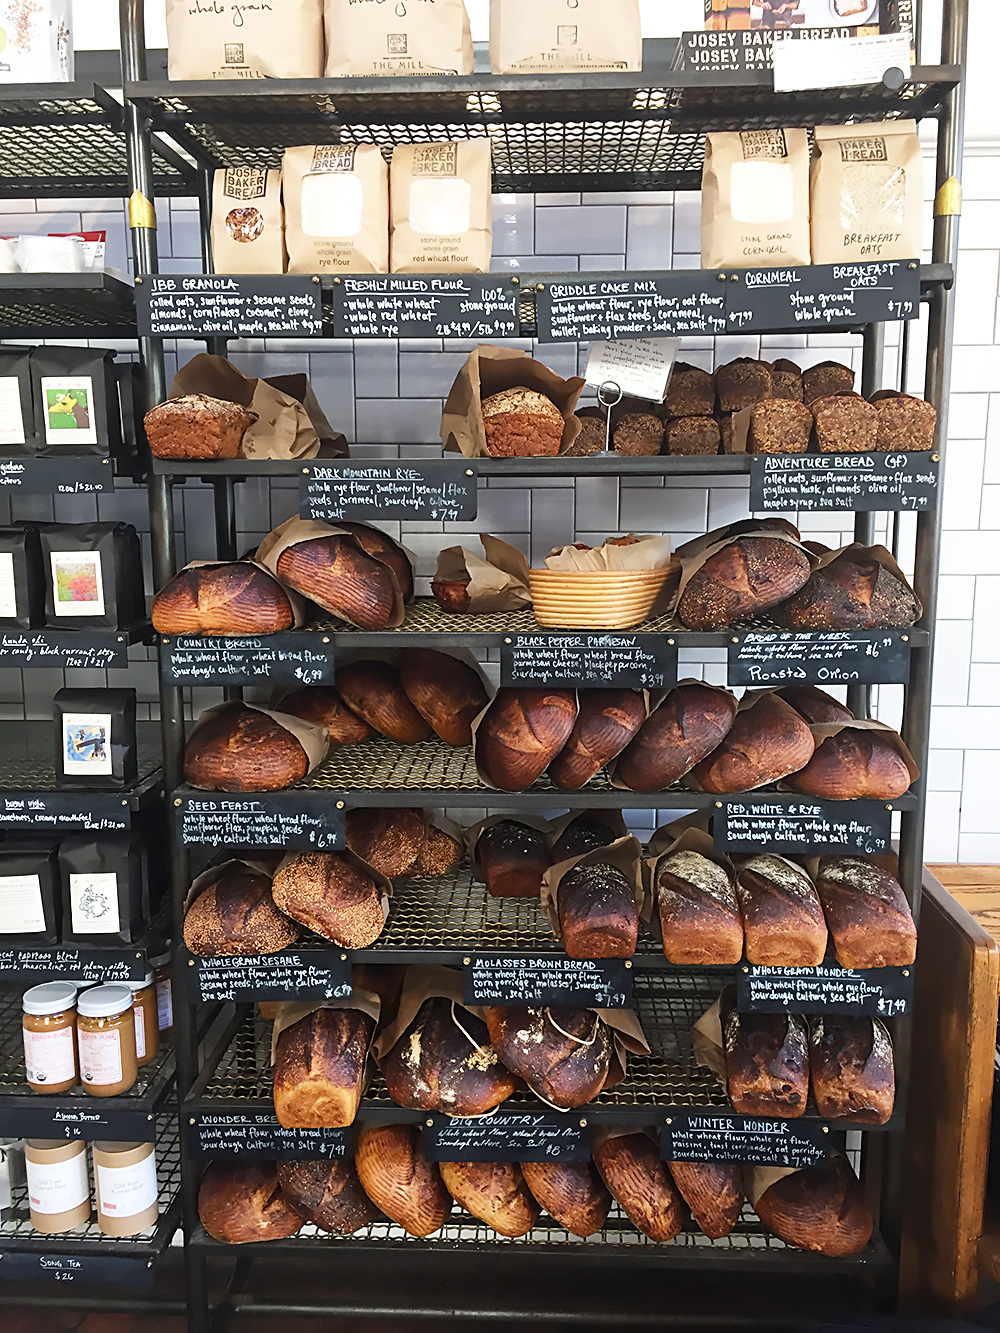 Josey Baker bread for sale at The Mill.